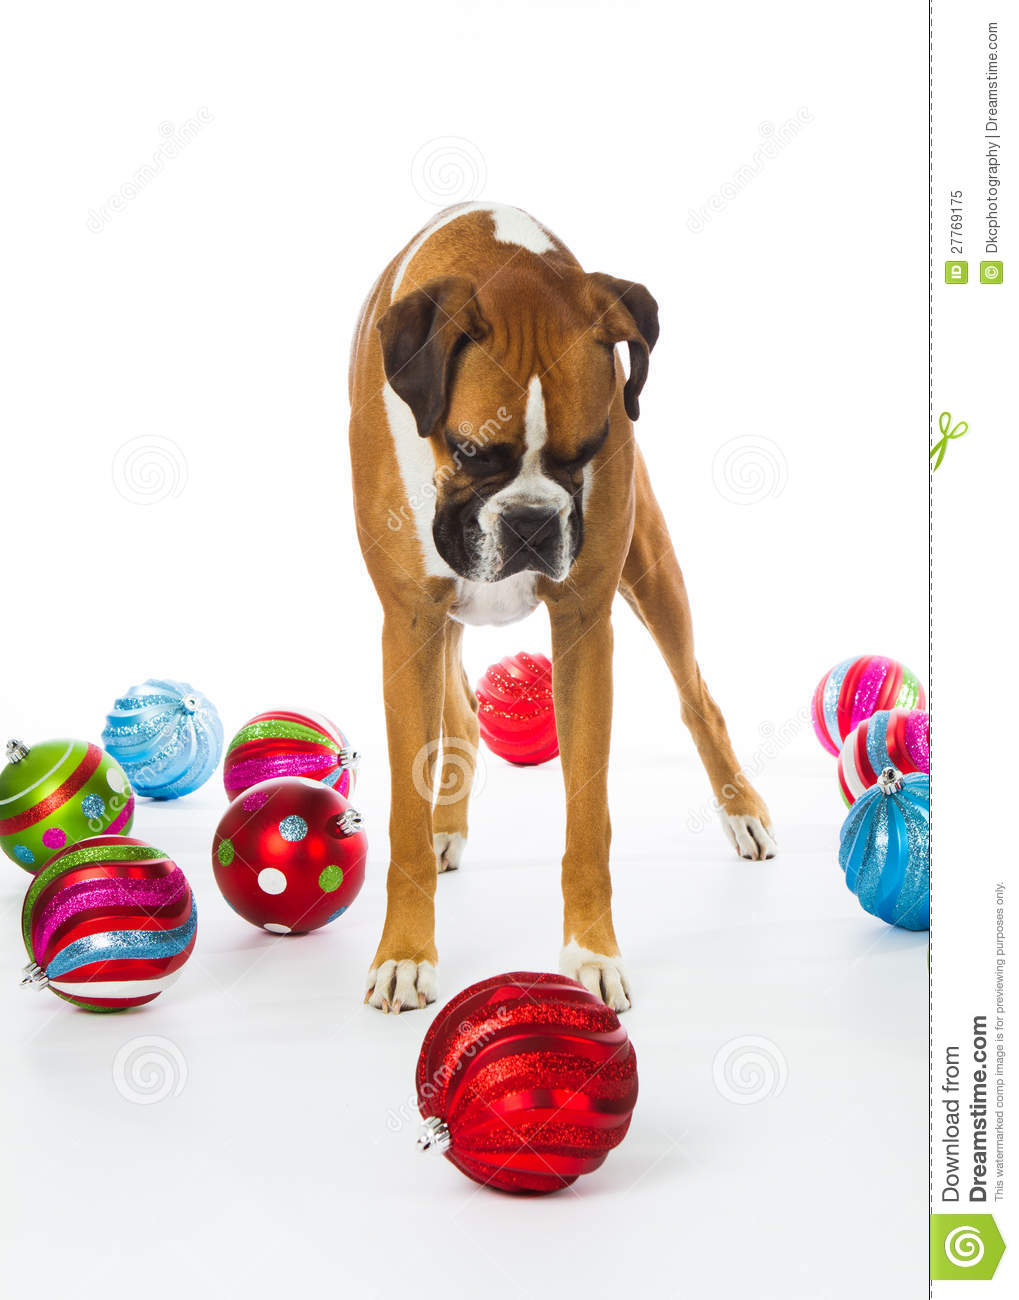 boxer dog with christmas ornaments royalty free stock